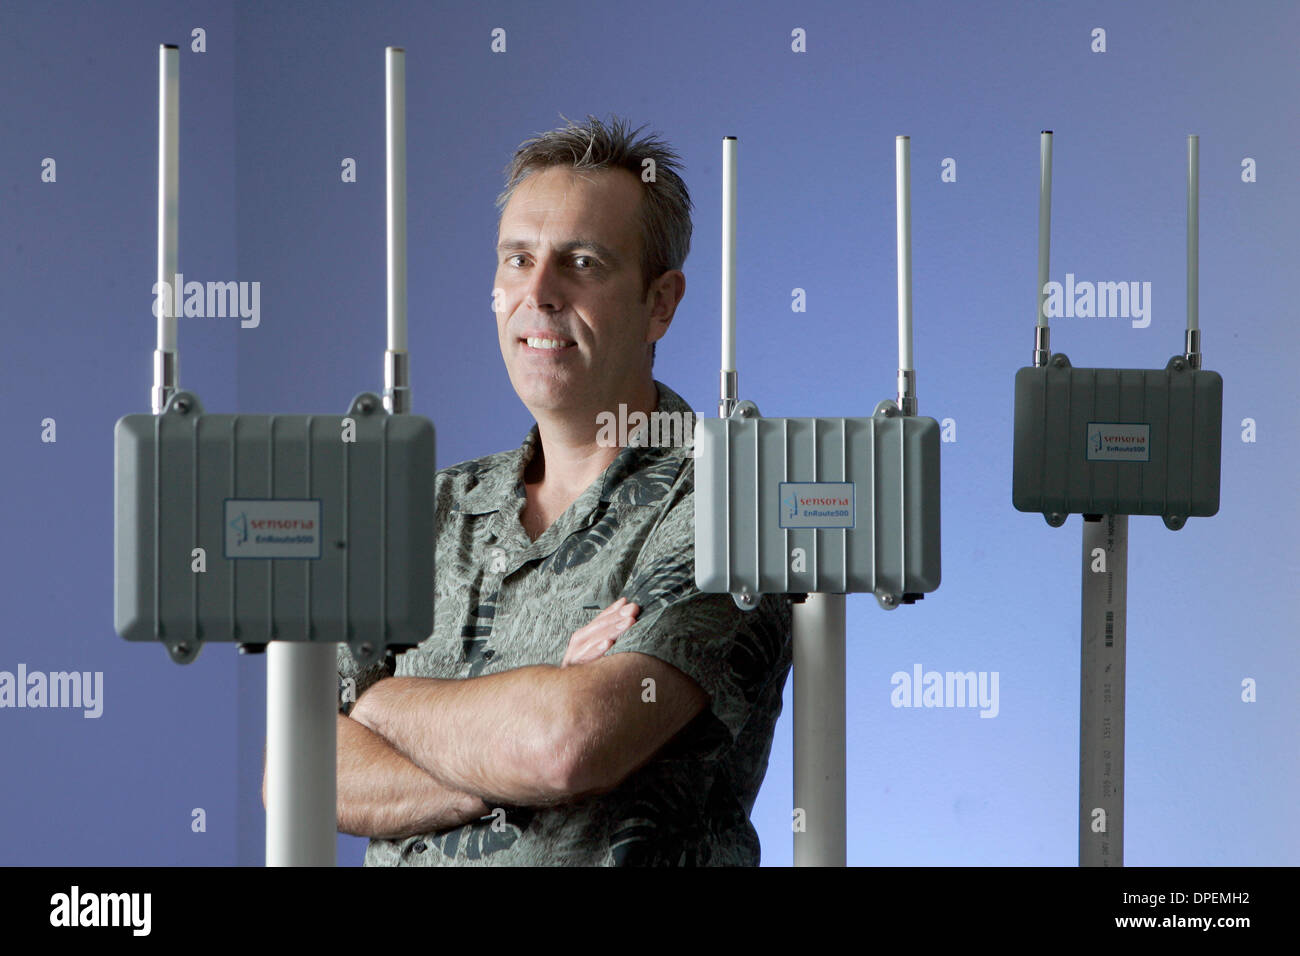 (Published 9/15/2006, C-1)  August 31, 2006, Rancho Bernardo, California, USA_DAVE GELVIN is pictured with his EnRoute500 mesh router and WiFi access point. Gelvin is the President and CEO of Sensoria Corp. Sensoria Corp. makes wireless networks that are used not only by the military but also by universities and  municipalities that want to offer wireless, high-speed Internet acces - Stock Image